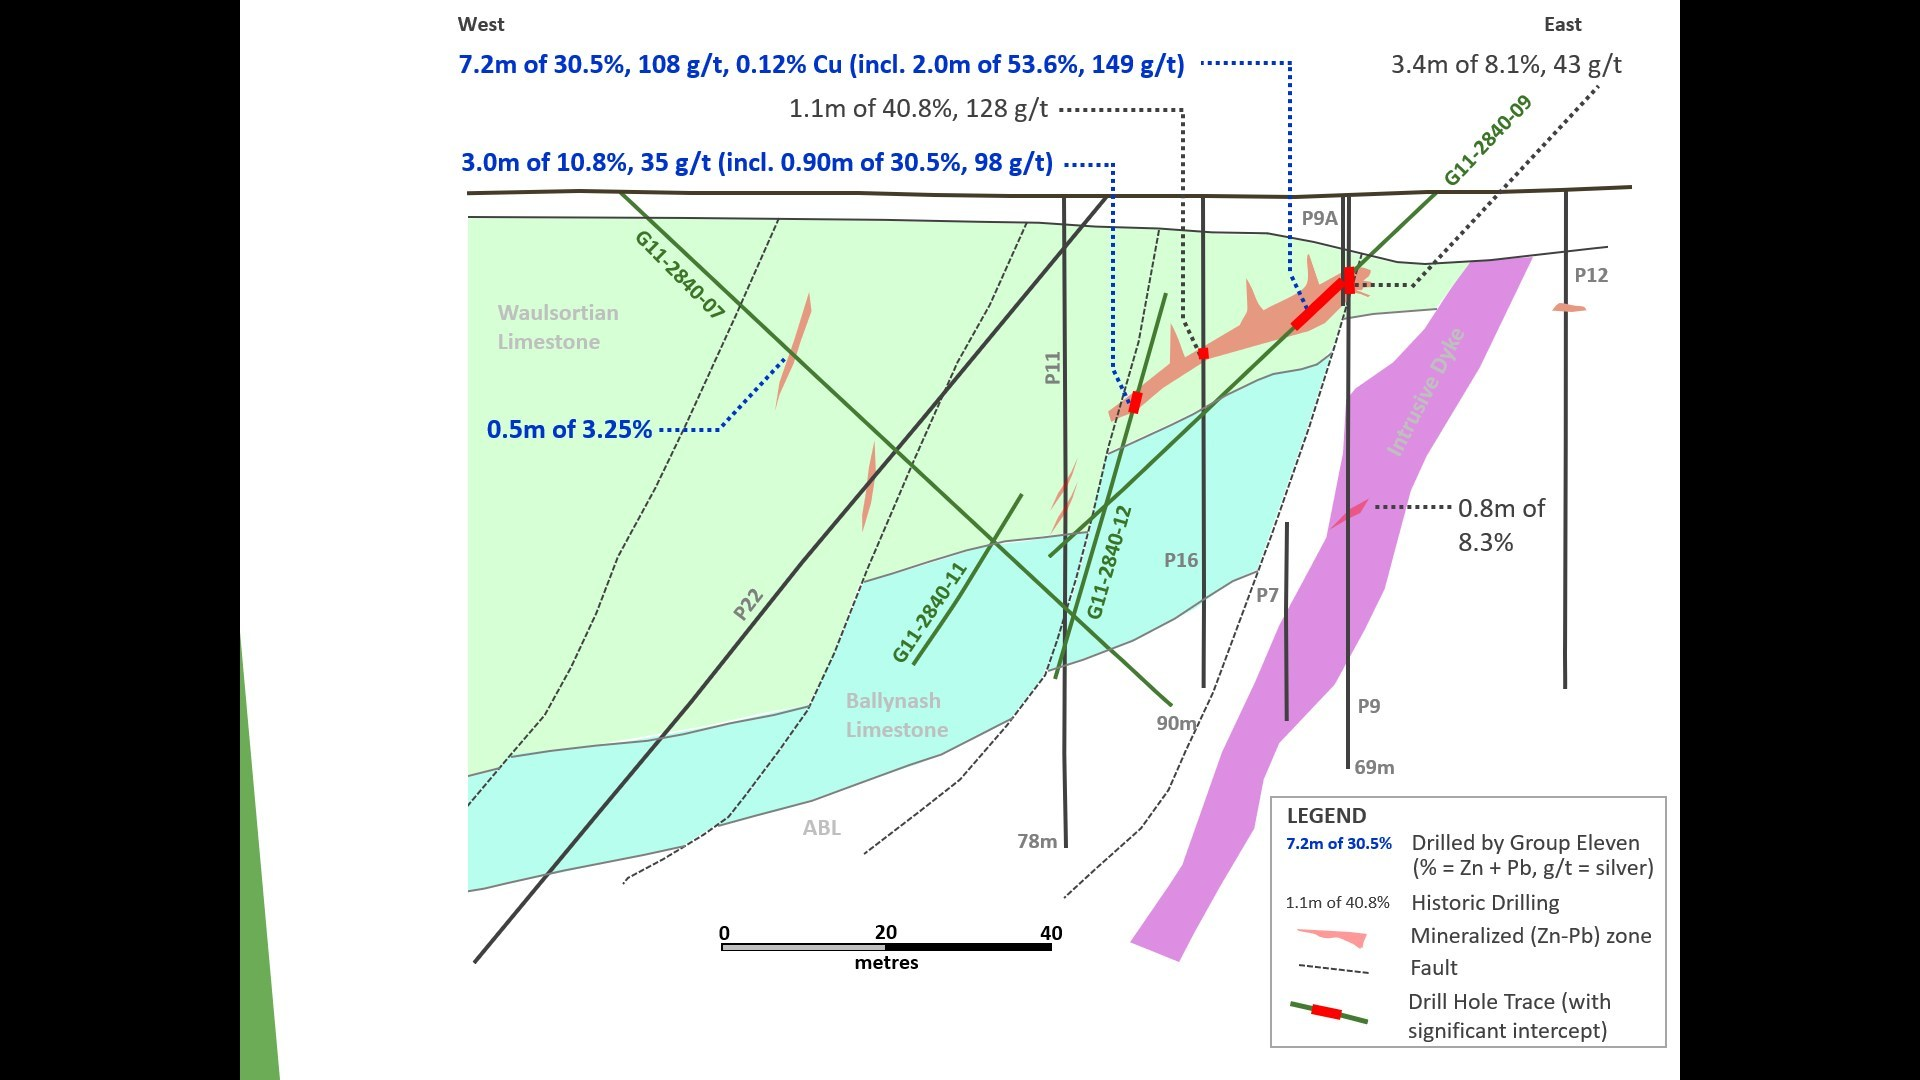 Exhibit 8. Cross-Section (D-D') Across Main Lens at Carrickittle Prospect, PG West Project, Ireland (CNW Group/Group Eleven Resources Corp.)